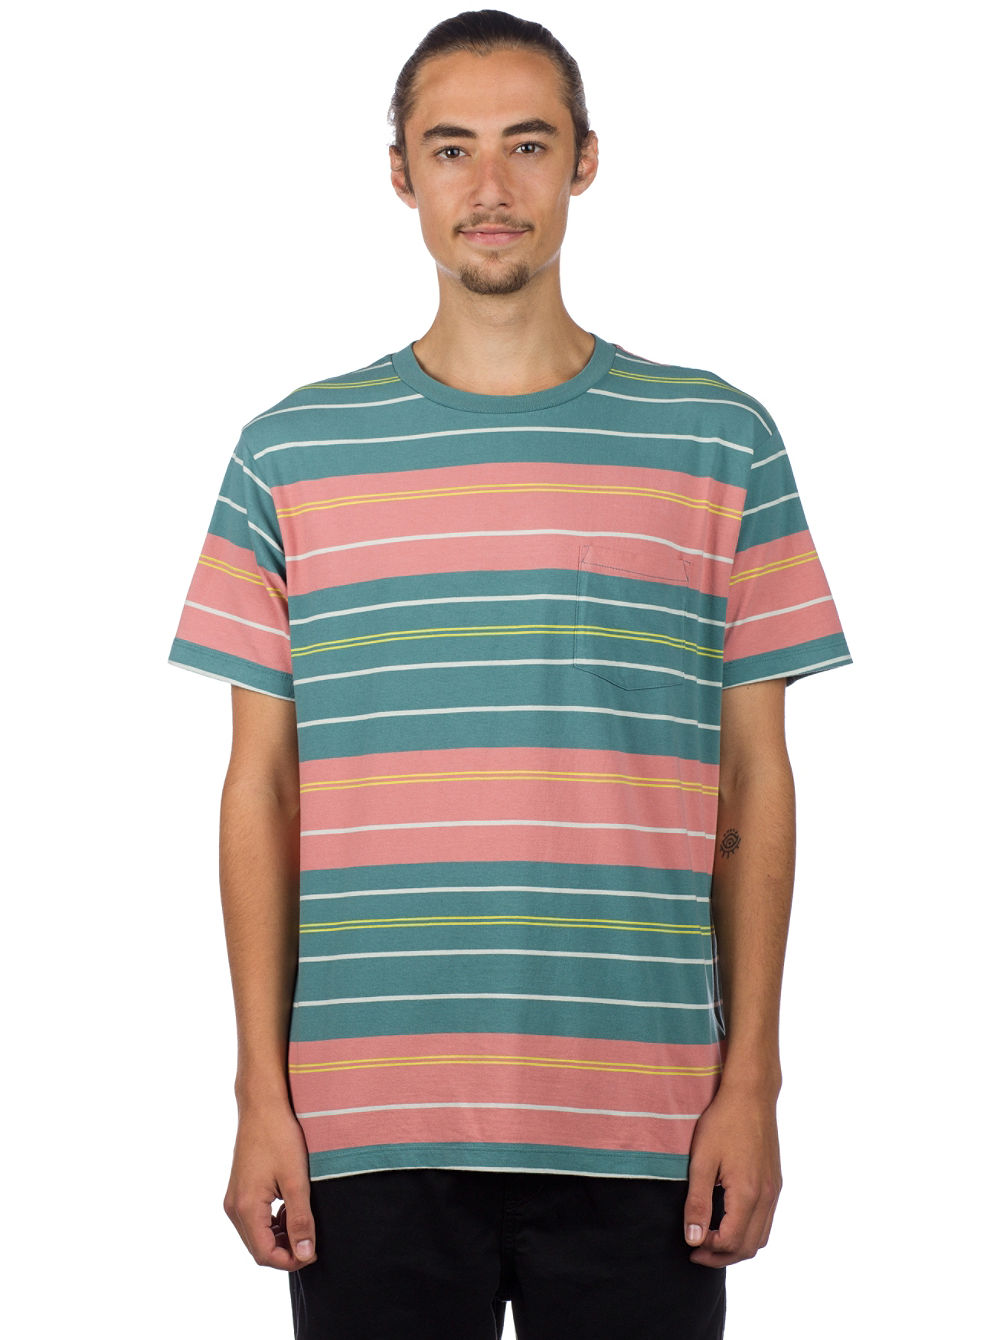 Rusholme Stripe T-Shirt